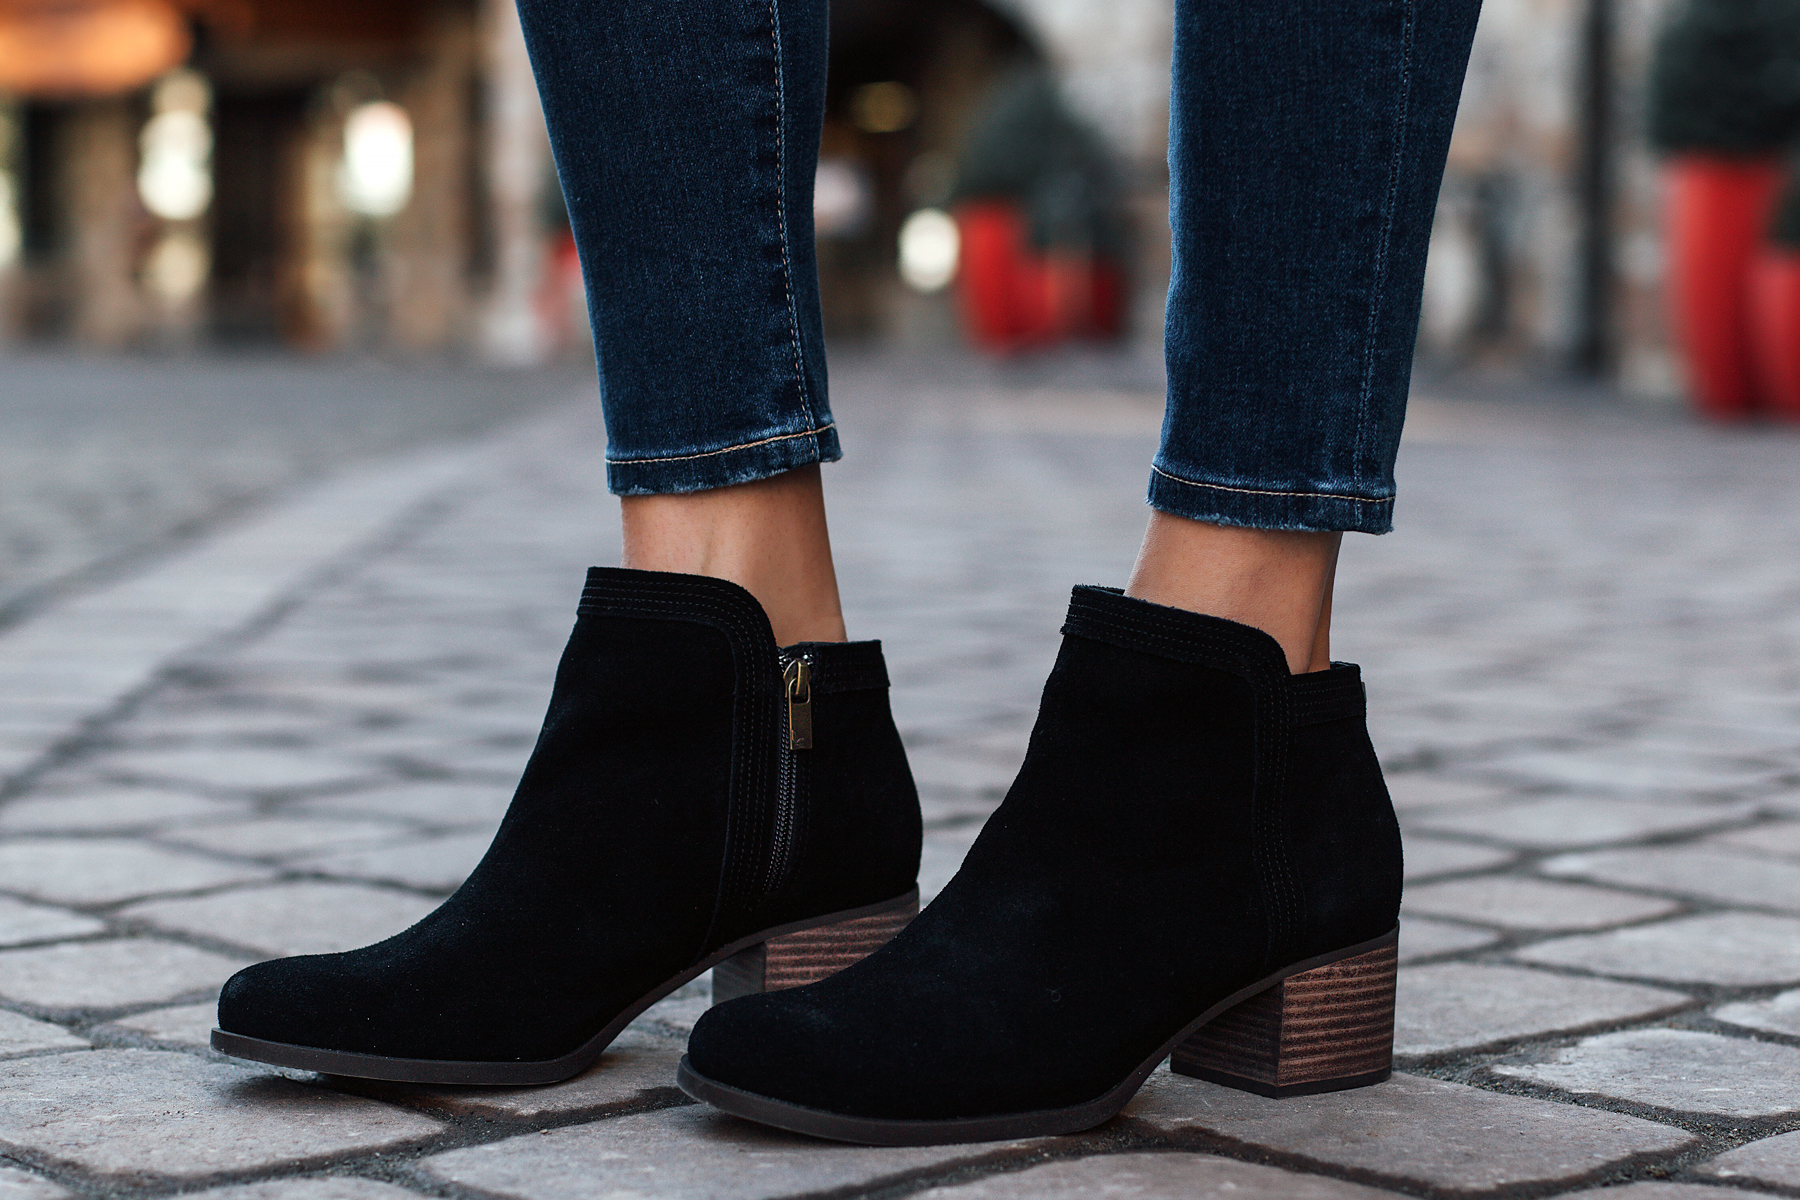 Koolaburra Thia Black Booties